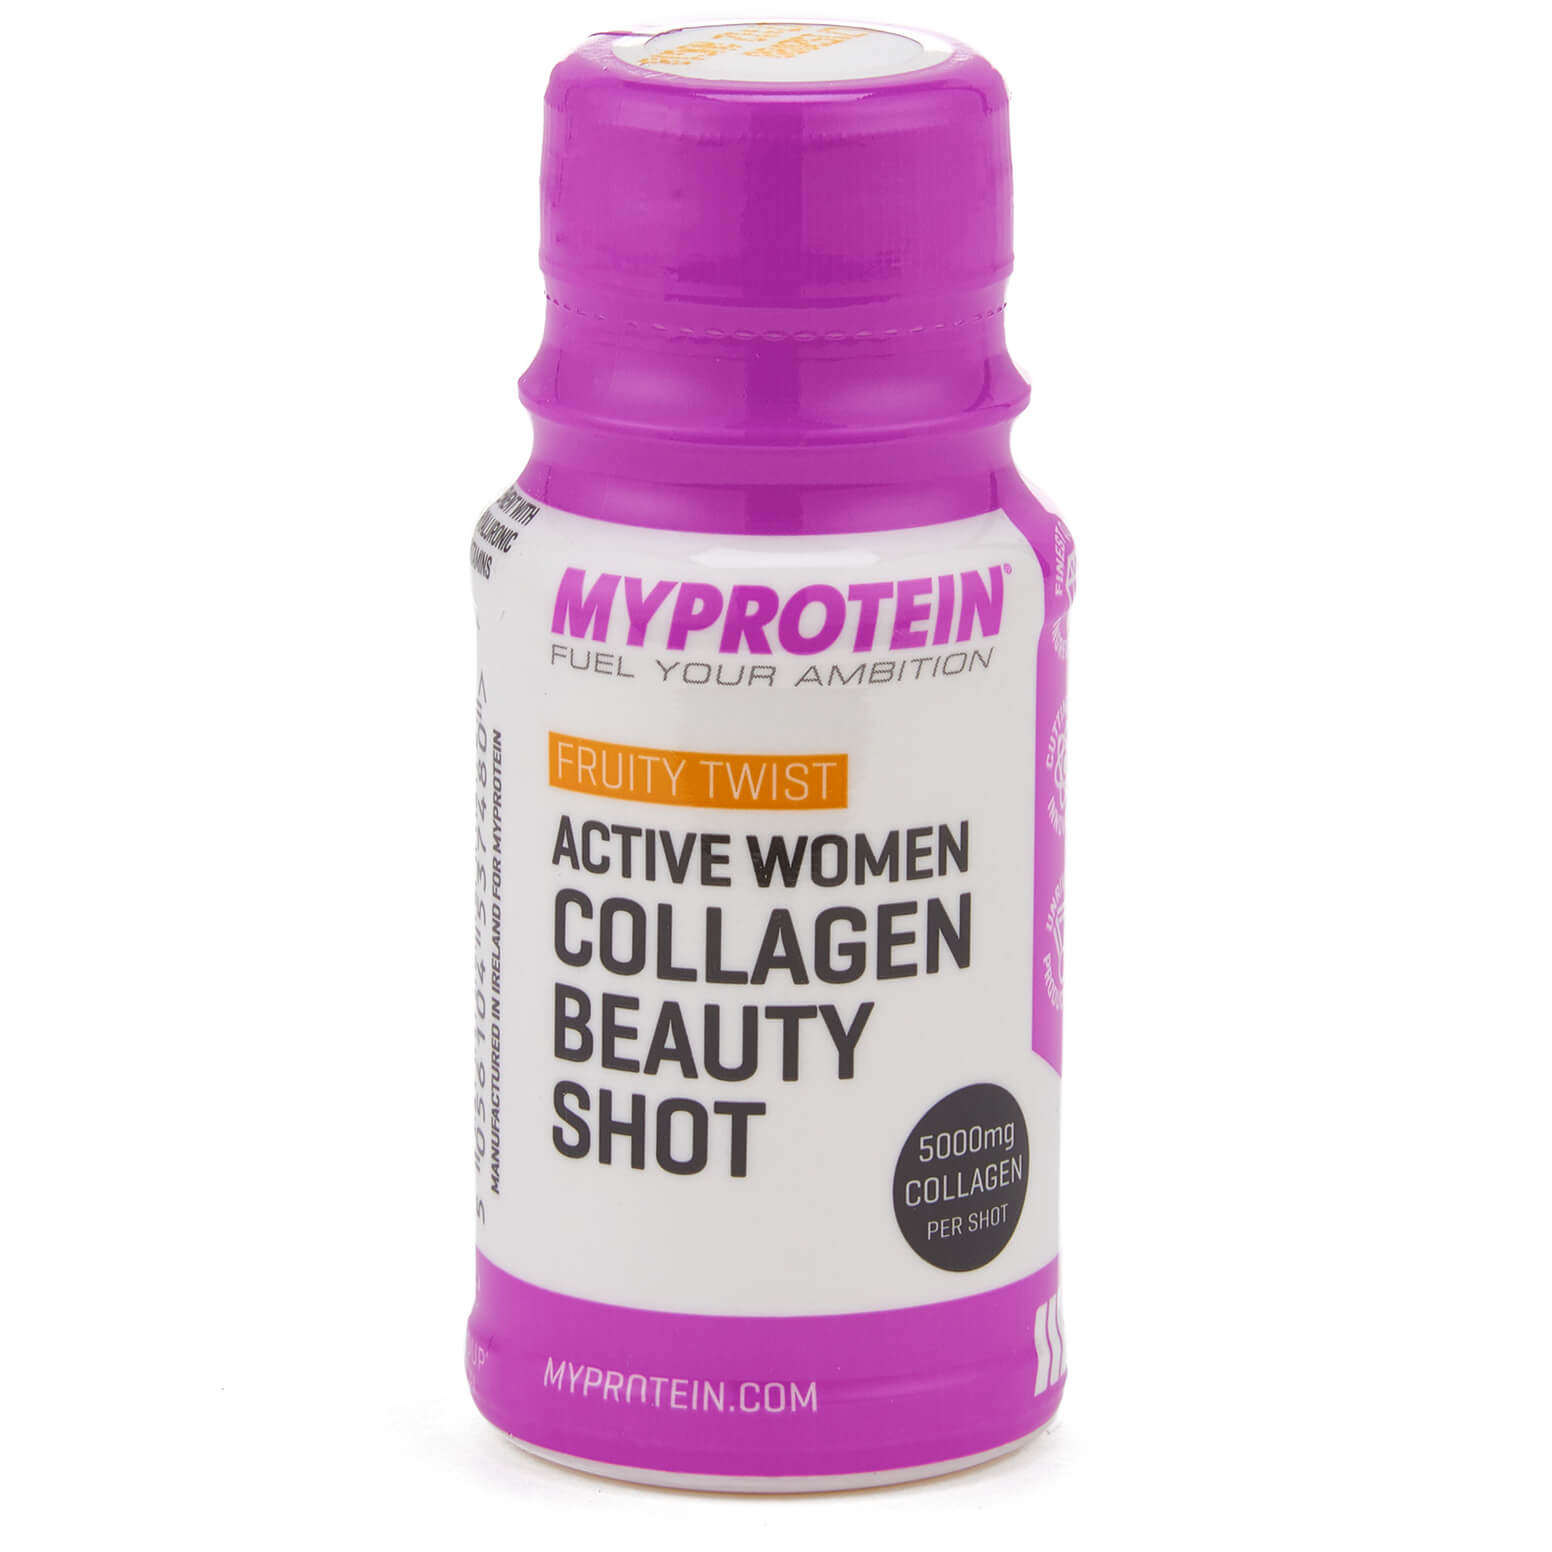 Active Women Collagen Beauty Shot (Sample) 60ml, Fruity Twist